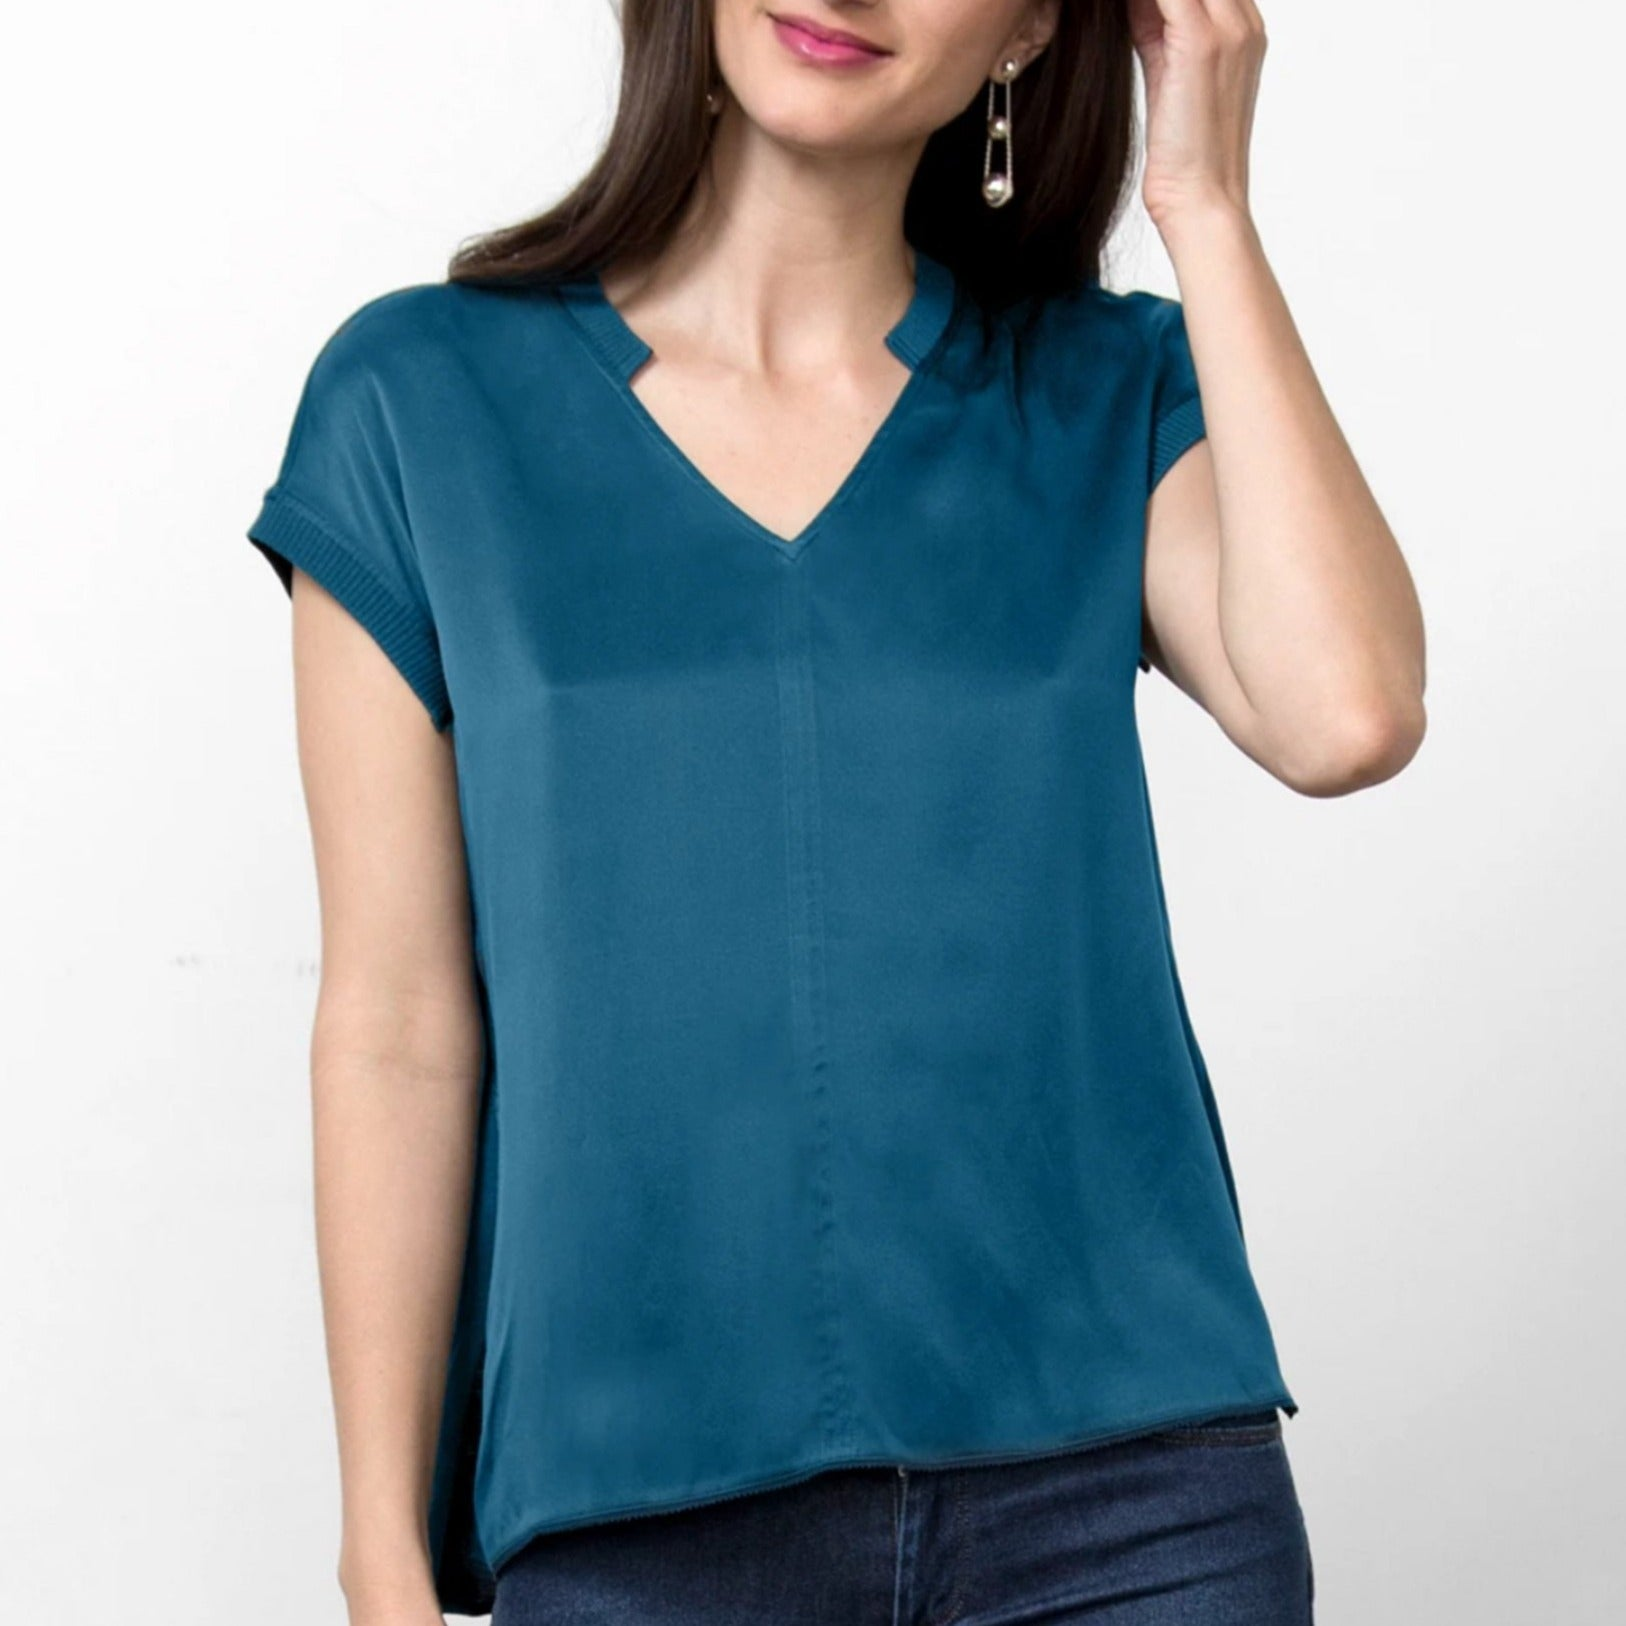 Go Silk ICONIC AnyTime Tee in Azure Blue